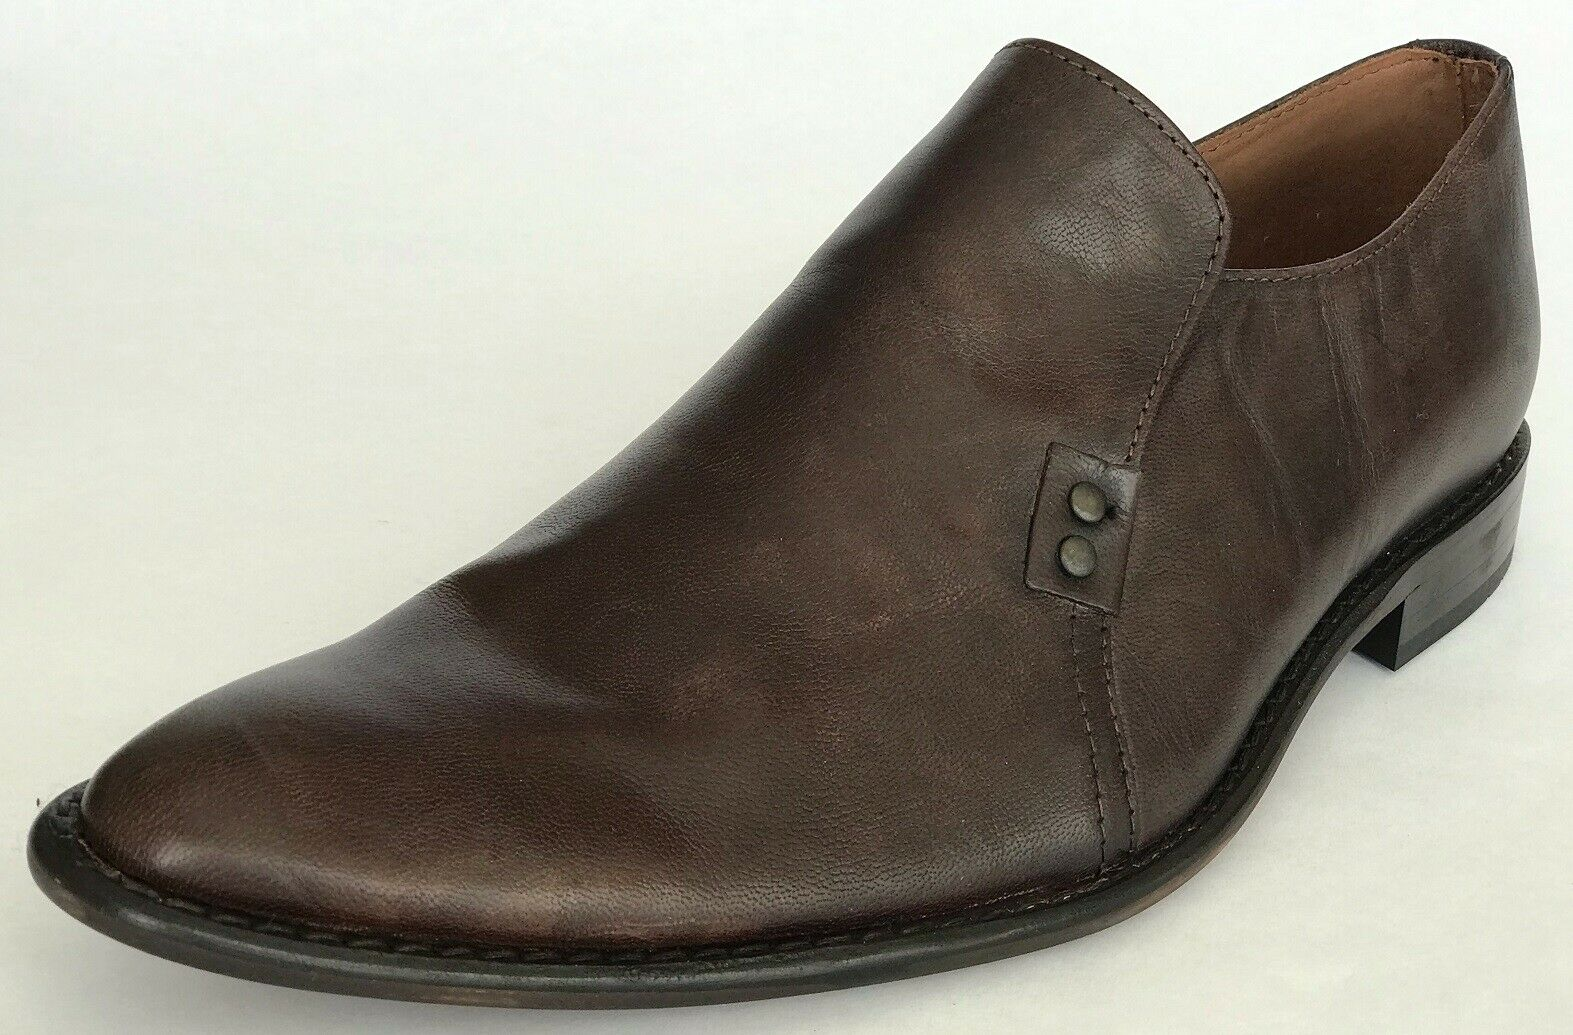 Kennet Cole Mens Steam Line Slip On Casual Dress Shoes Brown 12 NEW IN BOX